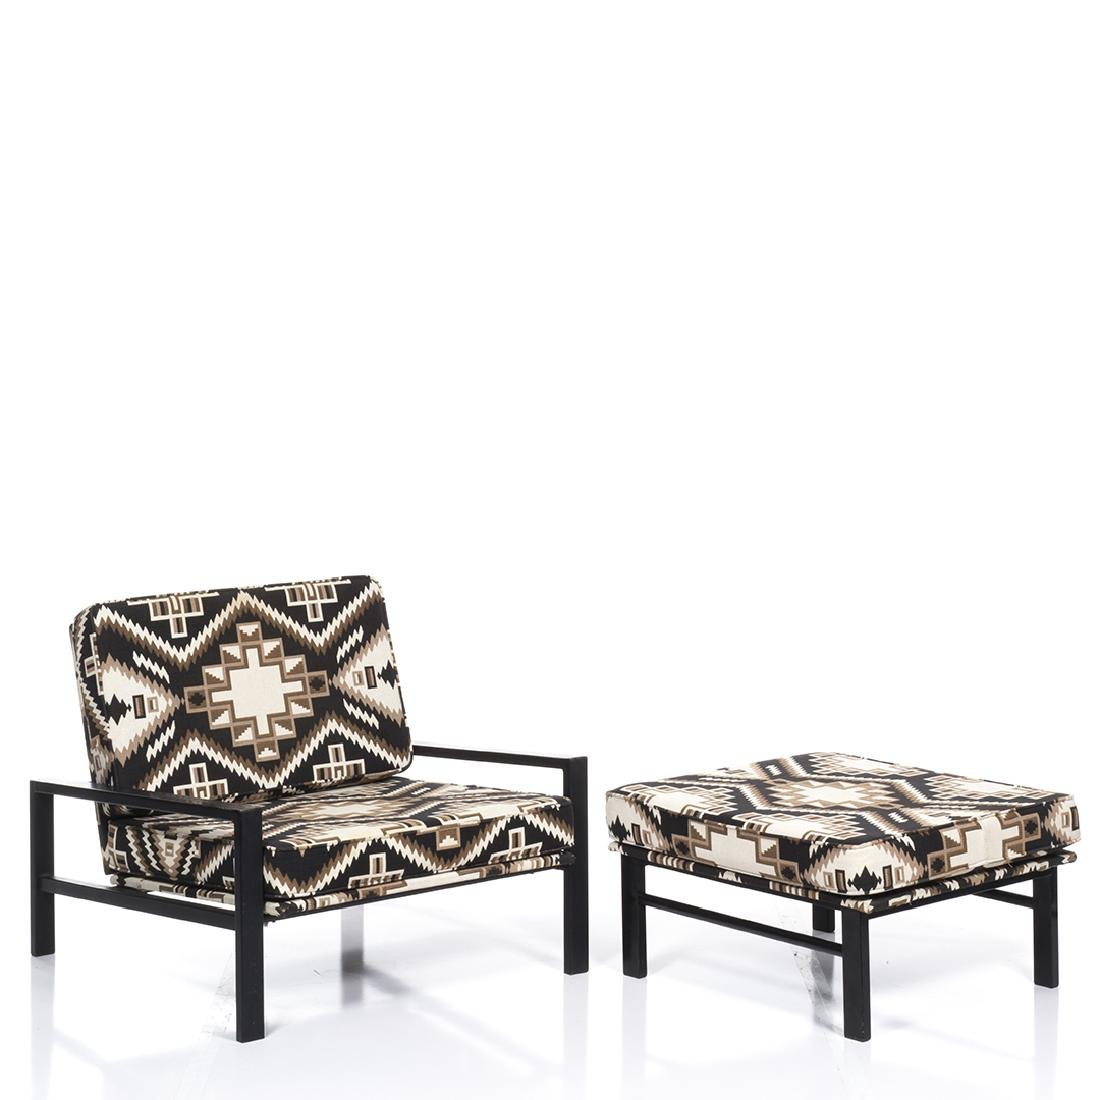 Van Keppel and Green Lounge Chair and Ottoman (2) - 2